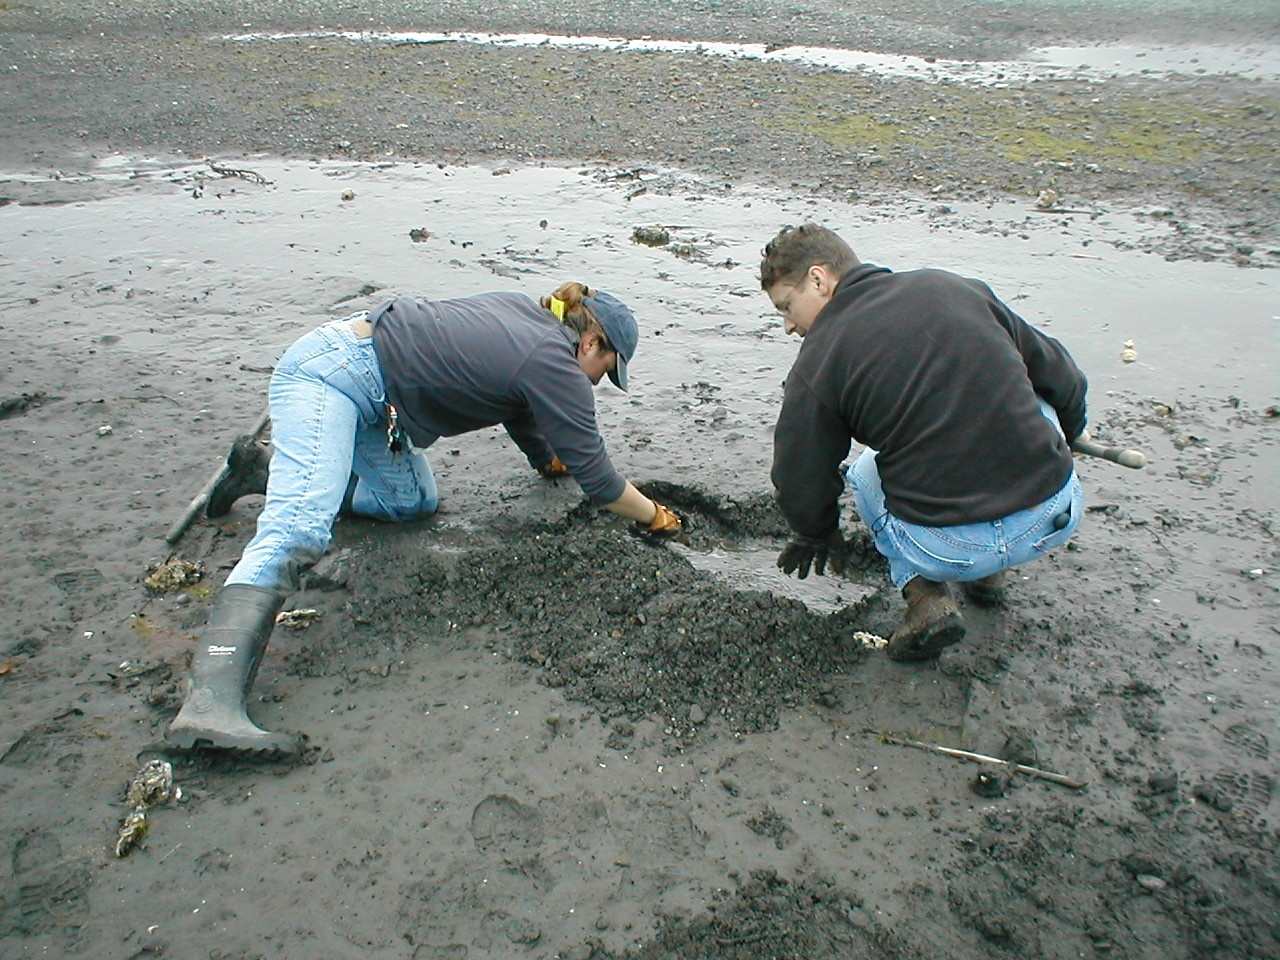 family digging clams on the beach